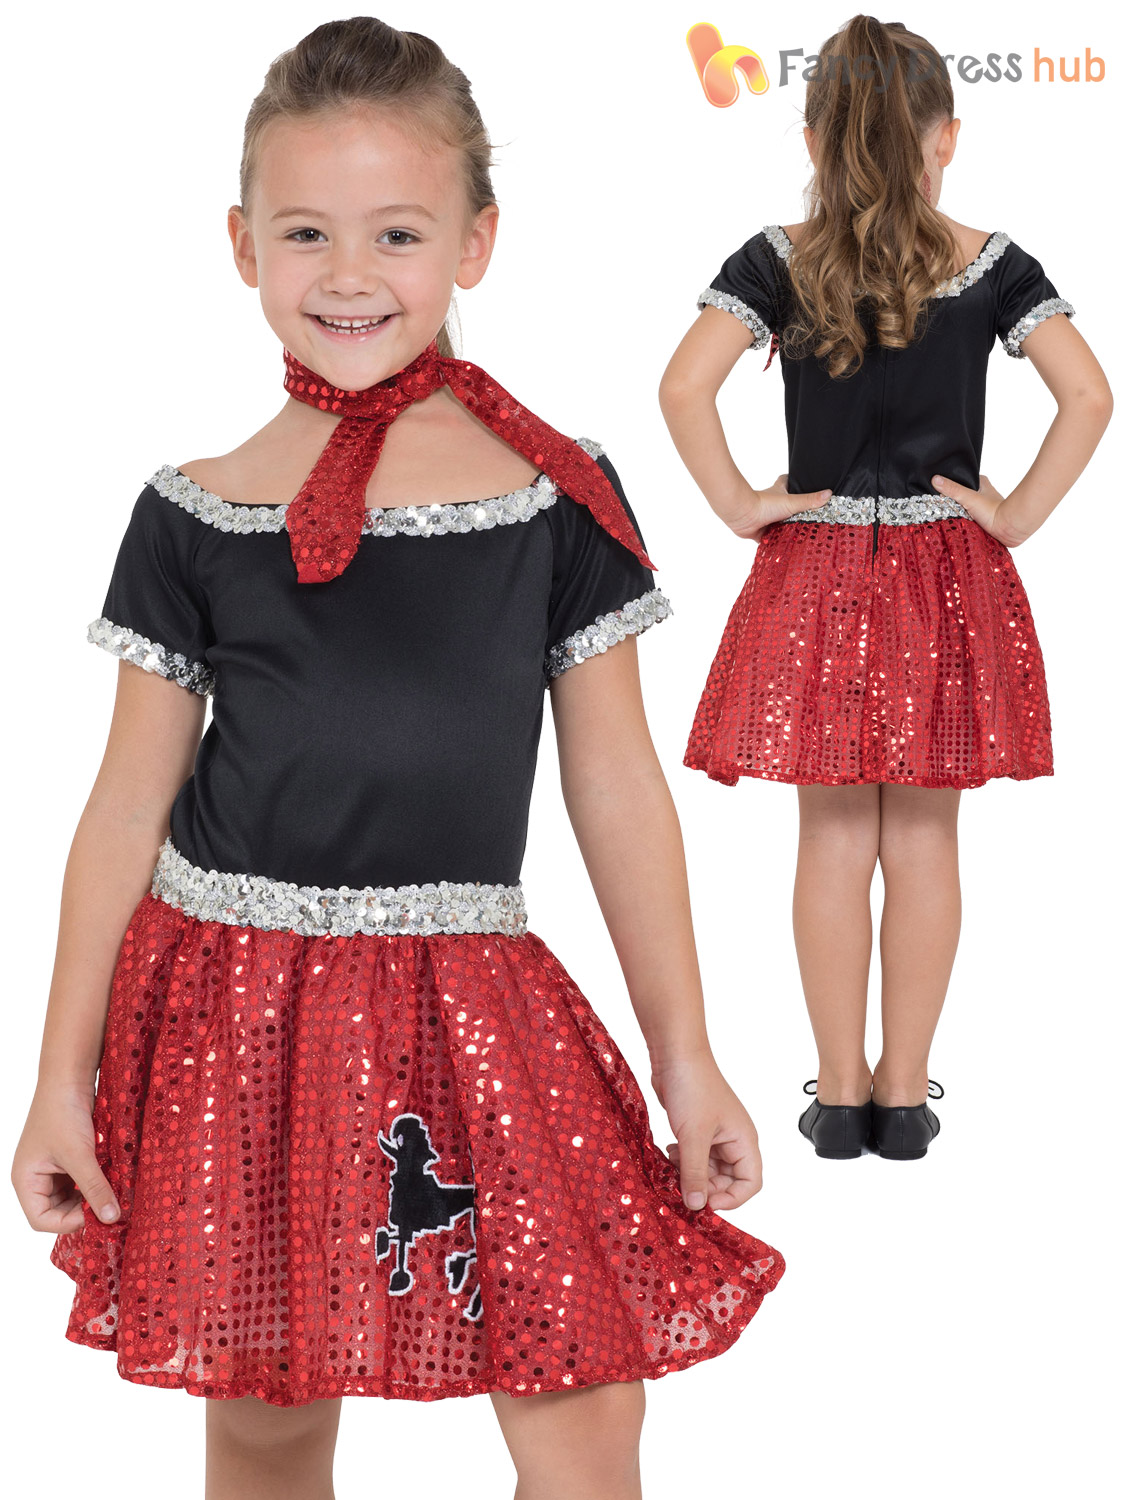 Details About Girls Rock N Roll Red Sequin Costume Child Retro 50s 60s Fancy Dress Kids Outfit